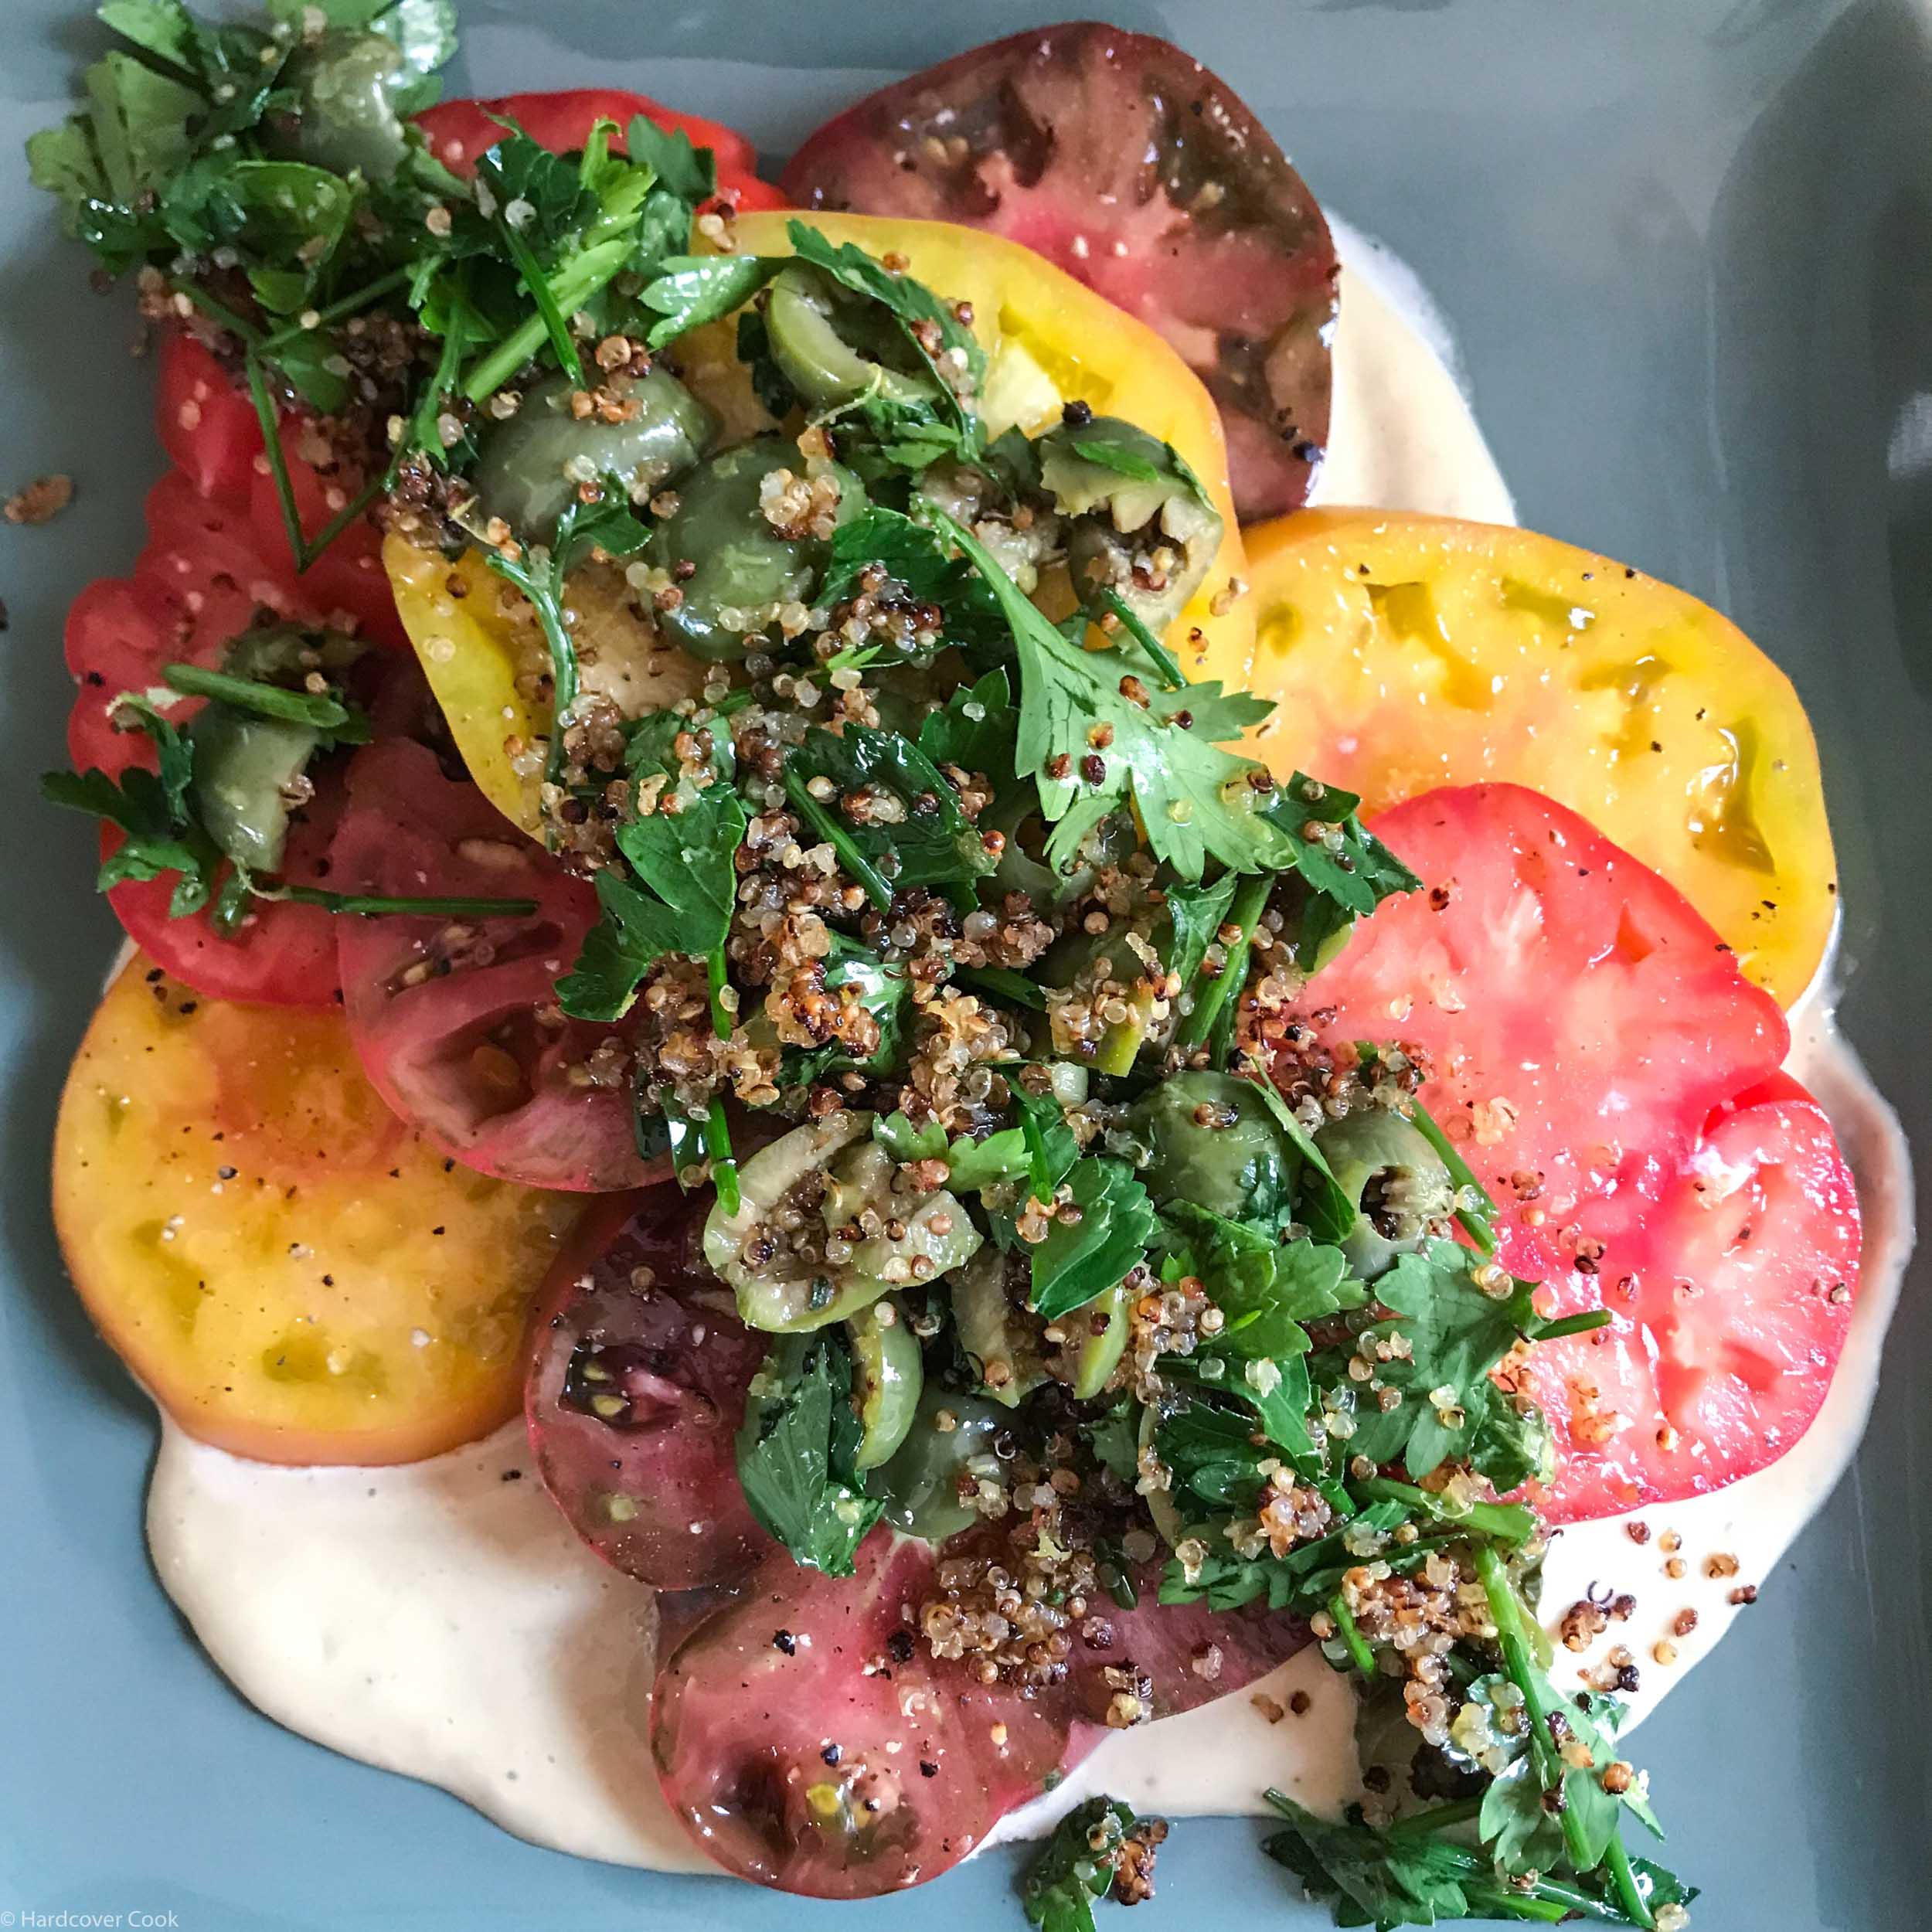 Heirloom Tomatoes with Crushed Olives, Crispy Quinoa, and White Anchovy Dressing from Poole's Diner Cookbook